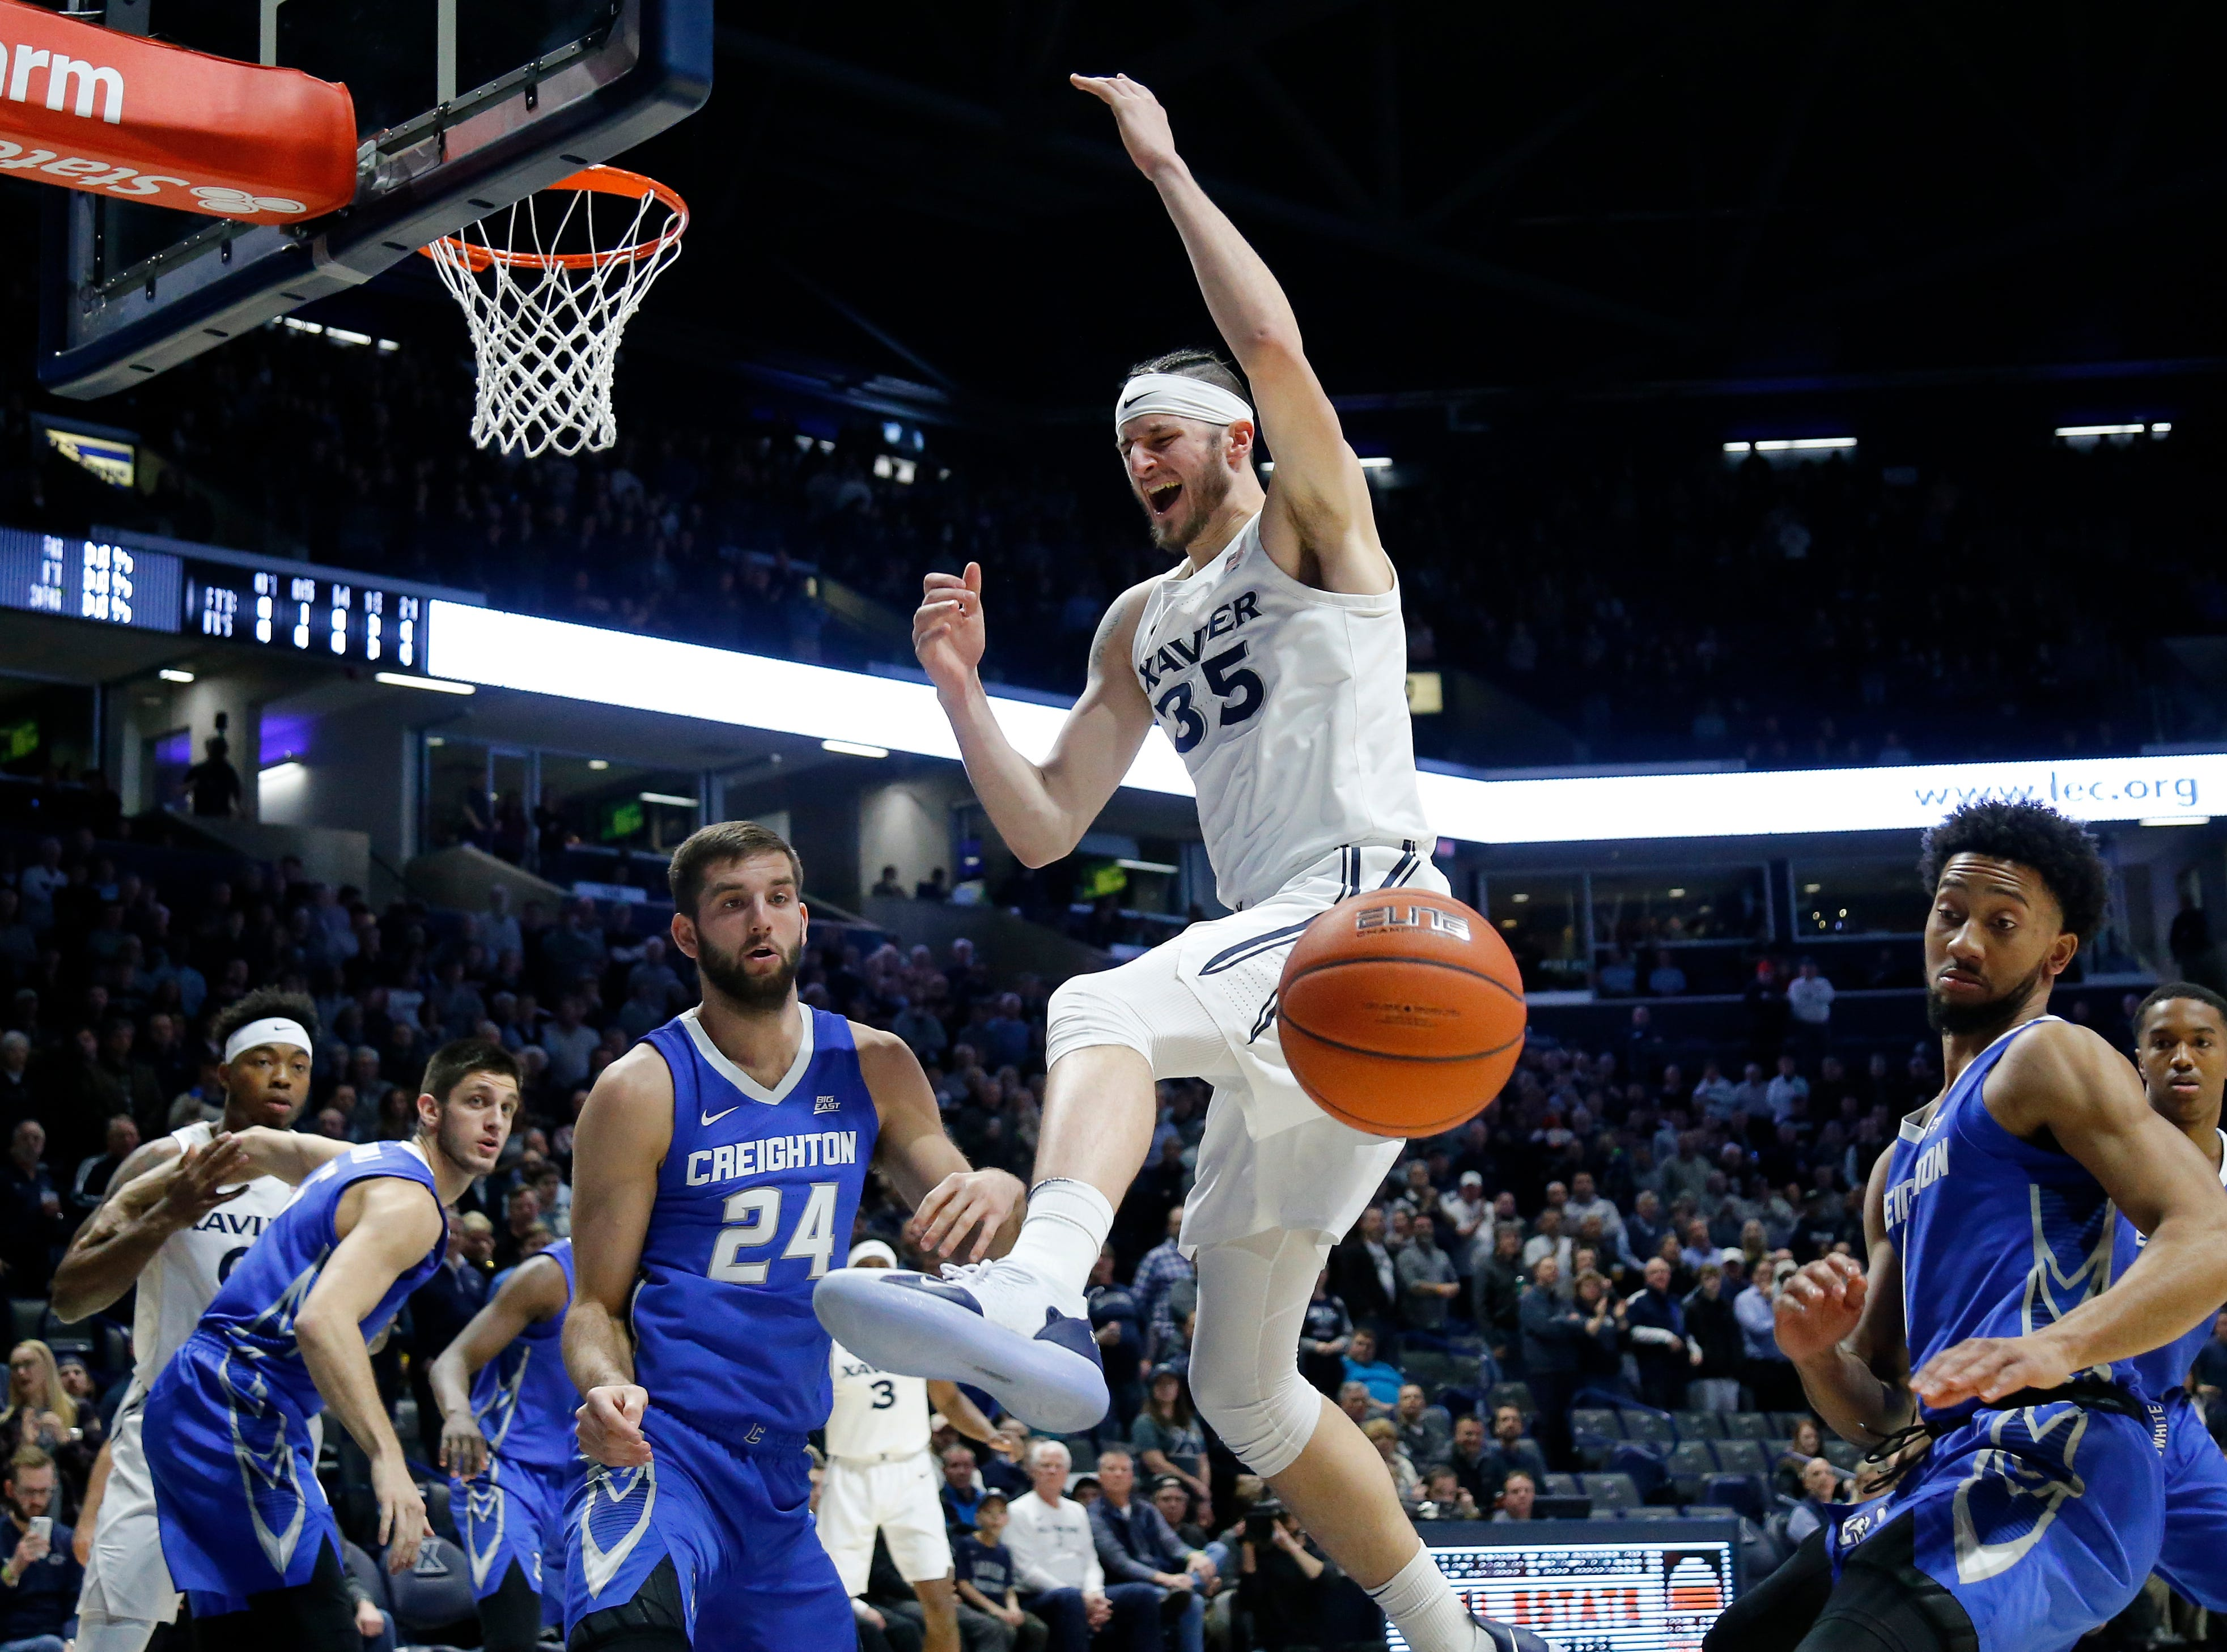 Xavier Musketeers forward Zach Hankins (35) reacts after being fouled chasing a rebound in the first half of the NCAA Big East Conference basketball game between the Xavier Musketeers and the Creighton Bluejays at Xavier's Cintas Center in Cincinnati on Wednesday, Feb. 13, 2019. Xavier led 36-30 at halftime.